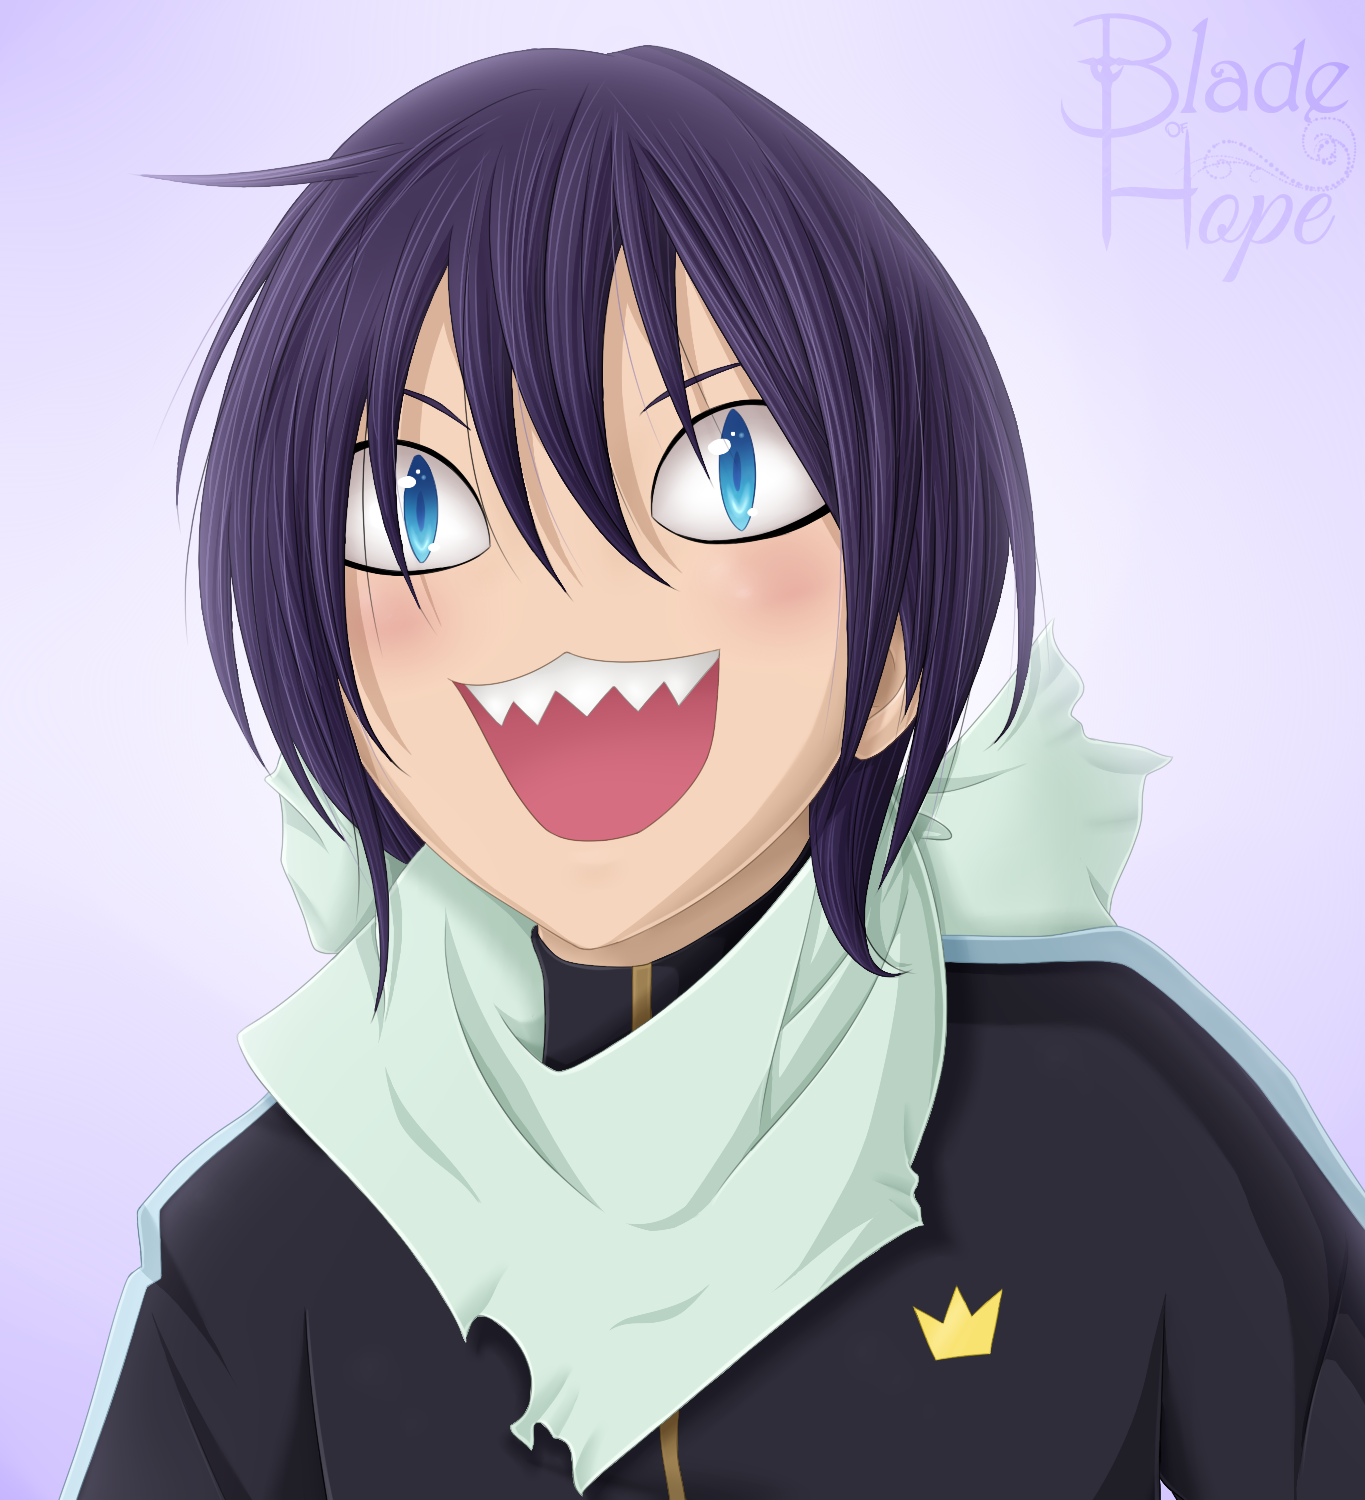 YATO by Blade-of-Hope on DeviantArt